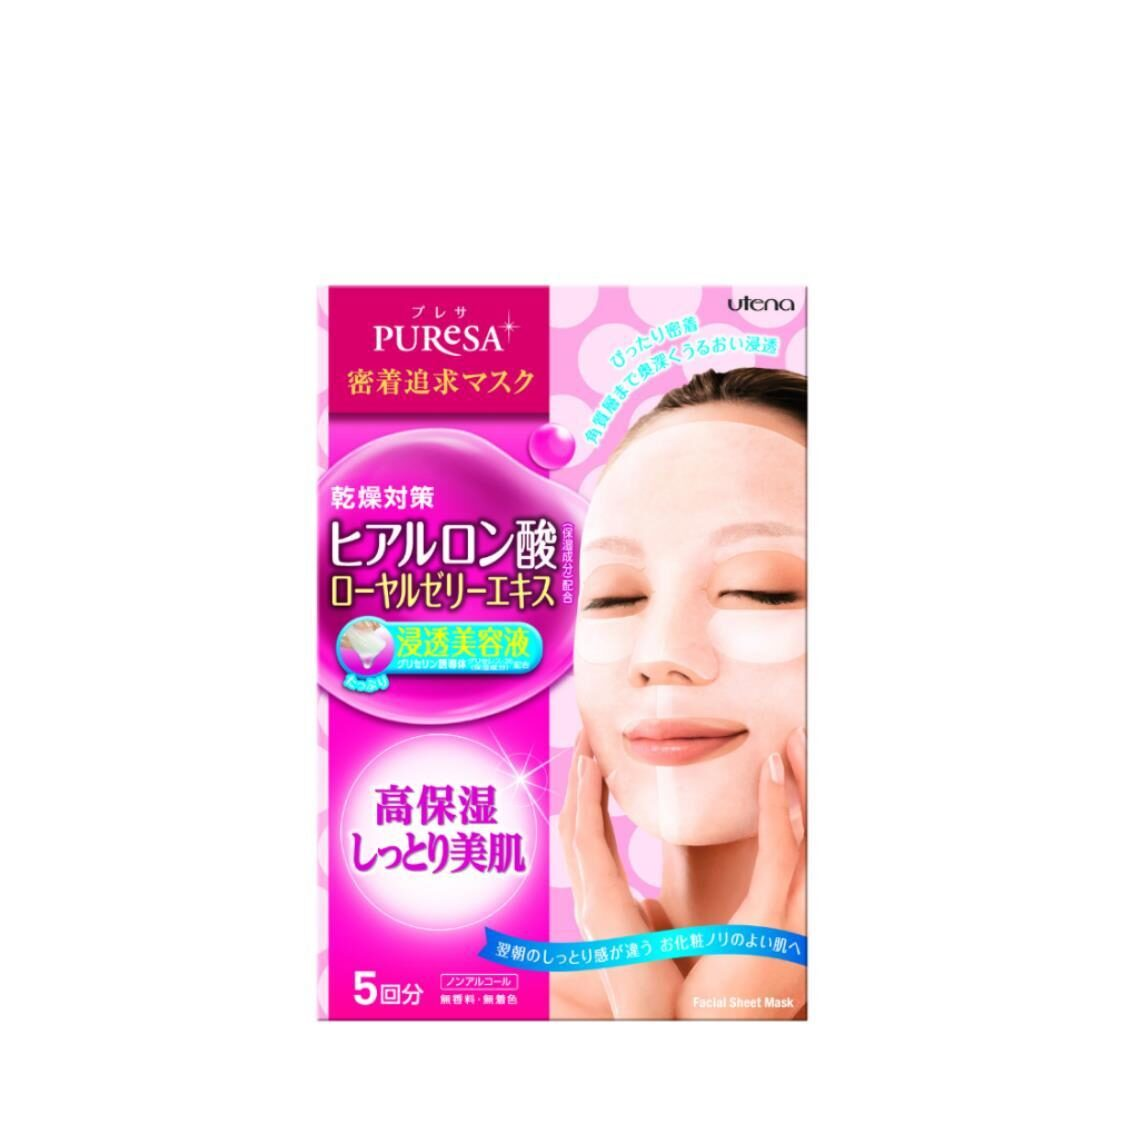 Puresa Sheet Mask Hyaluronic Acid